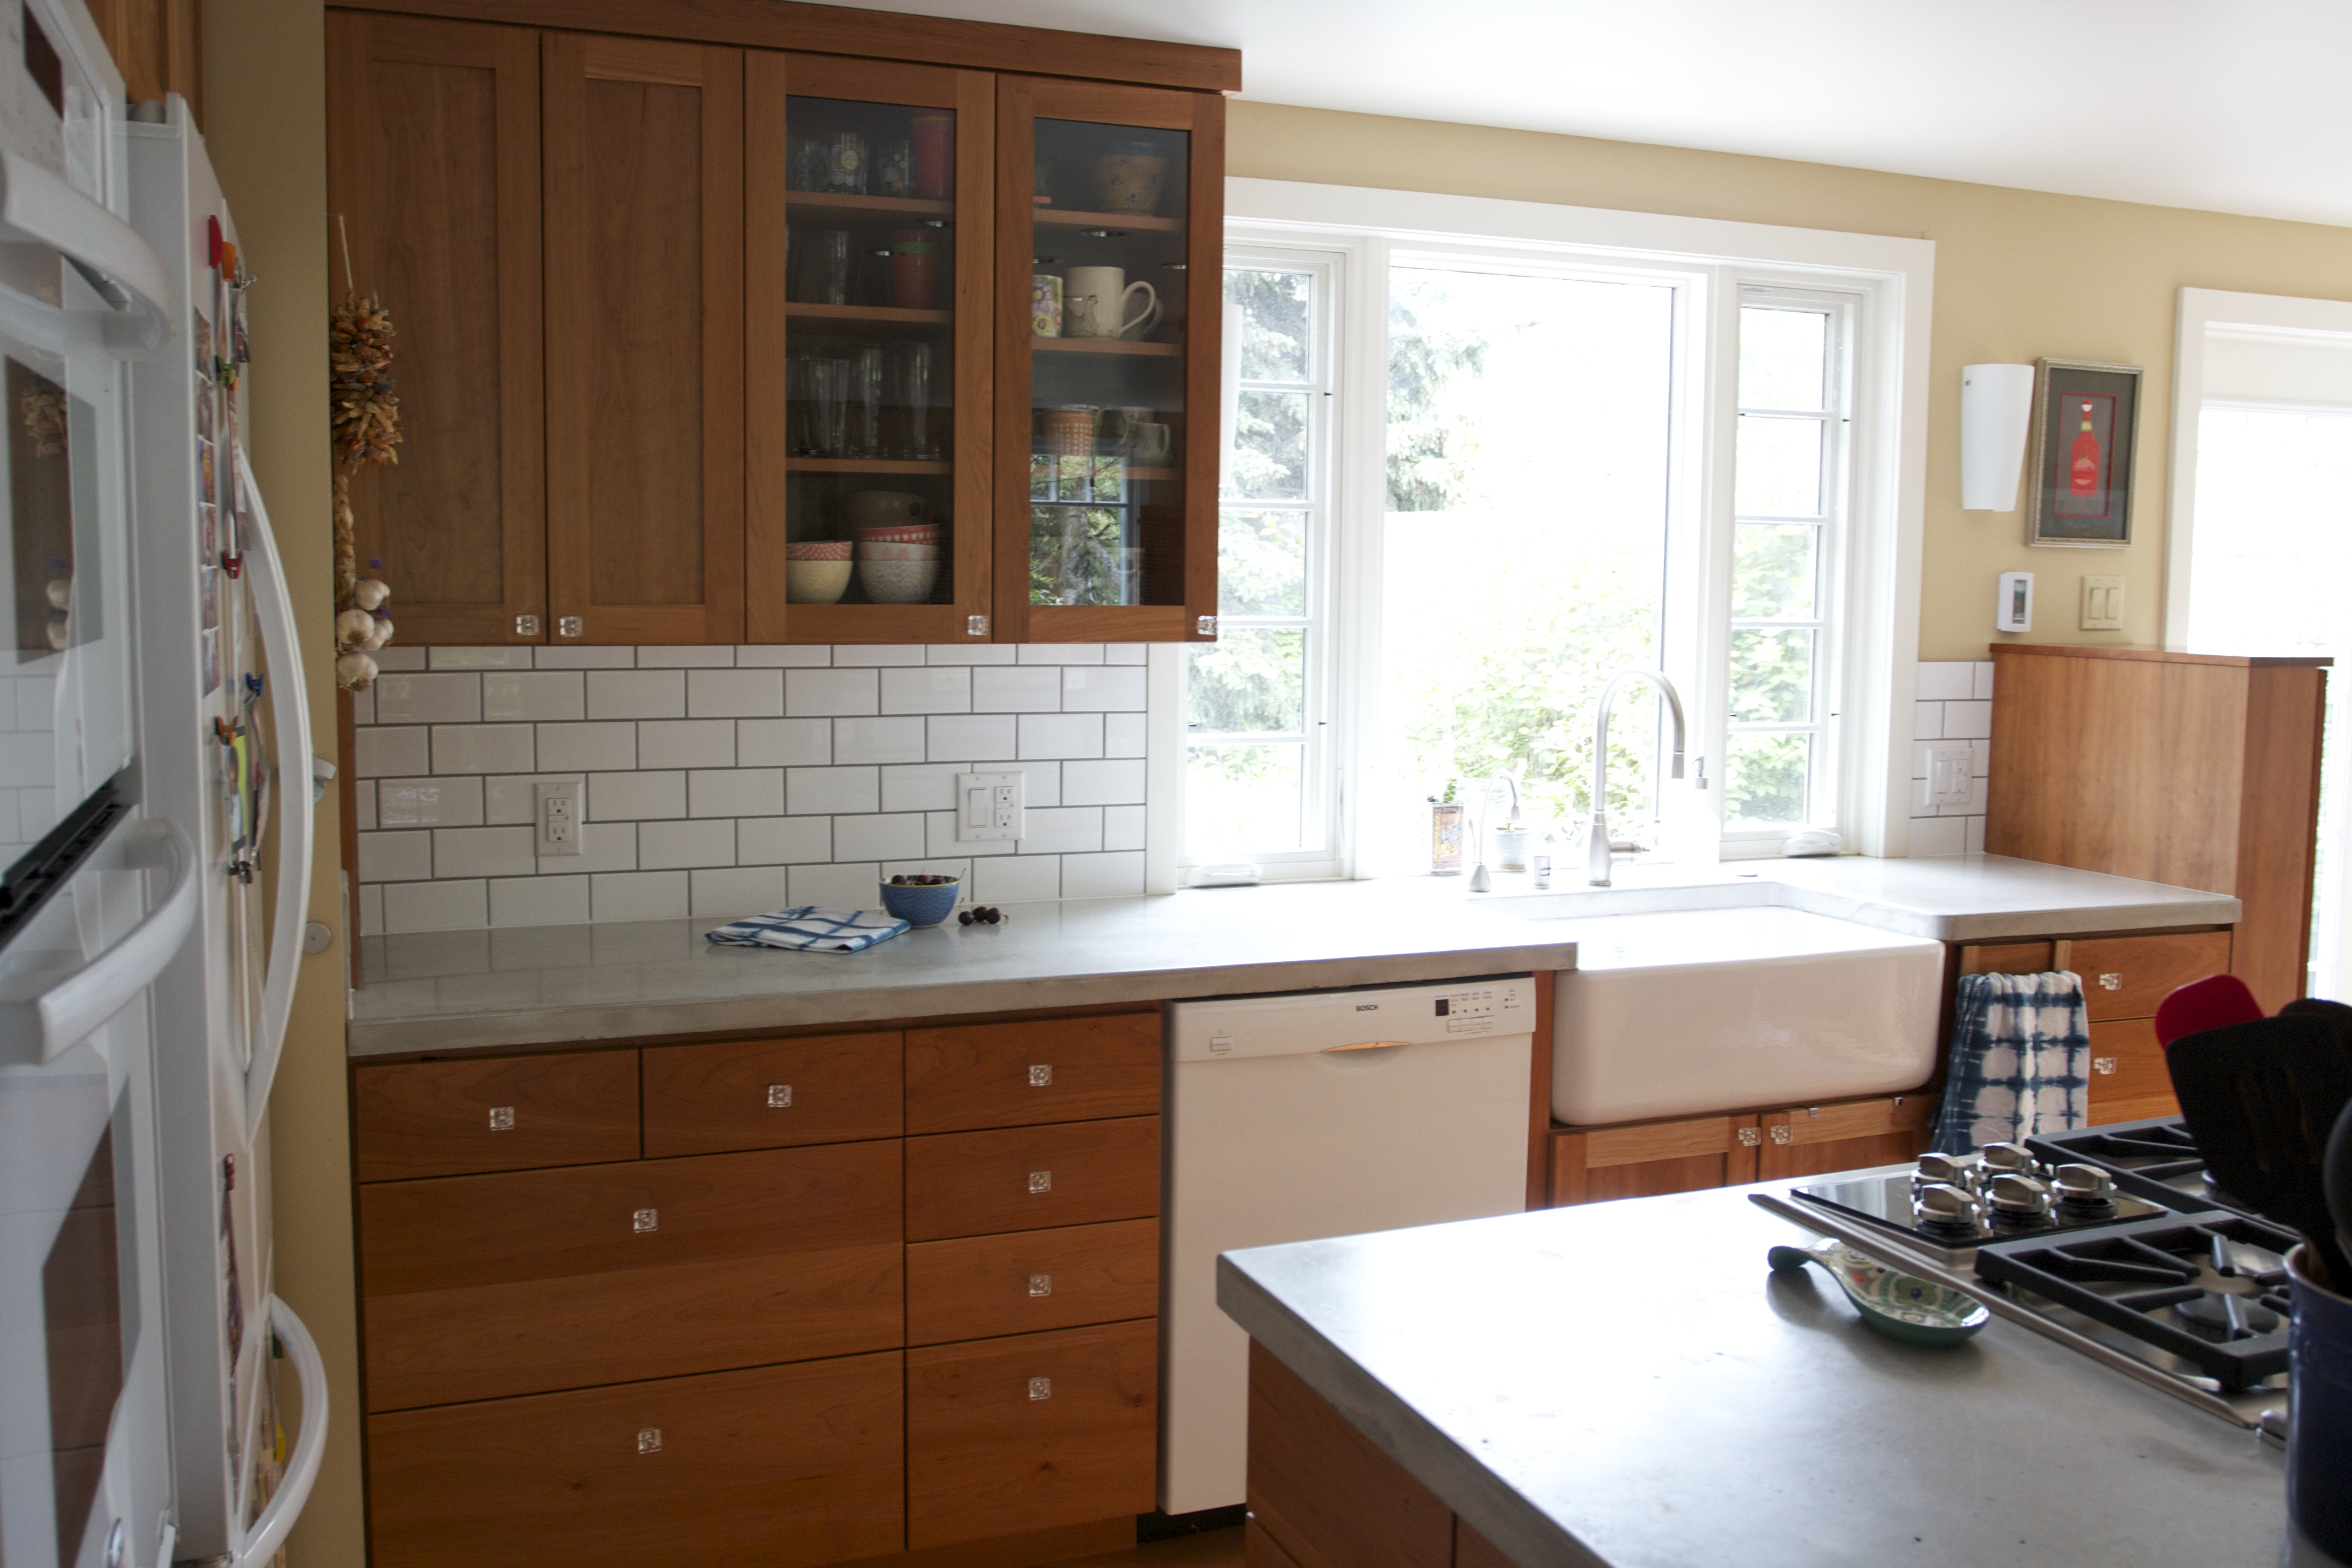 Mera's House: A New Kitchen Backsplash – Red House West